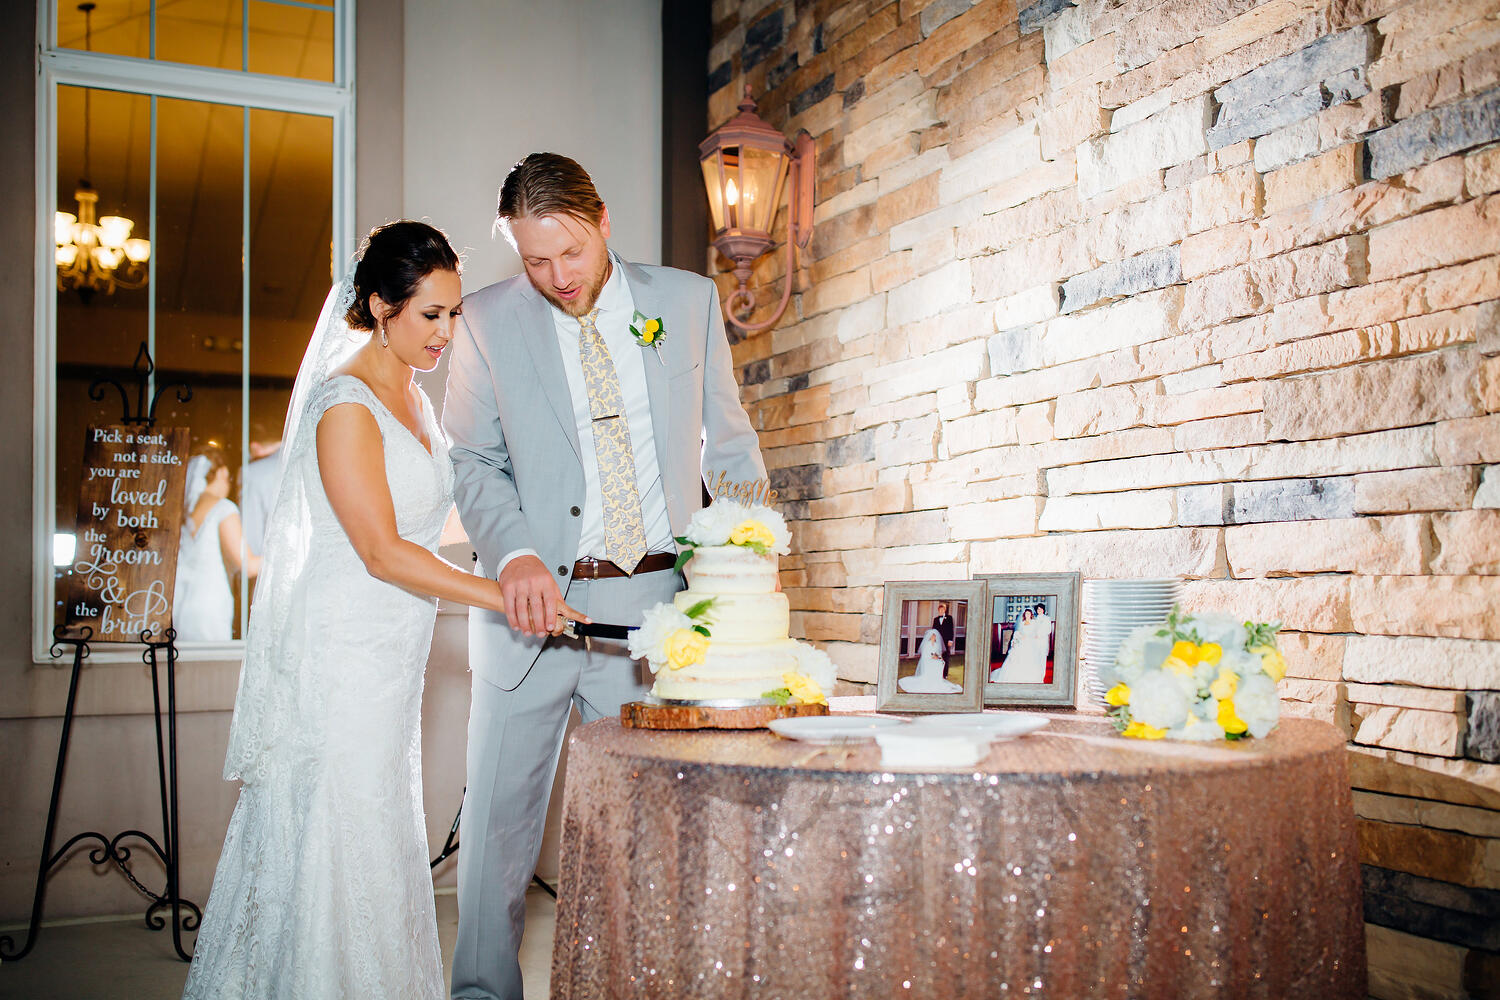 Cake cutting at Ken Caryl Vista by Wedgewood Weddings